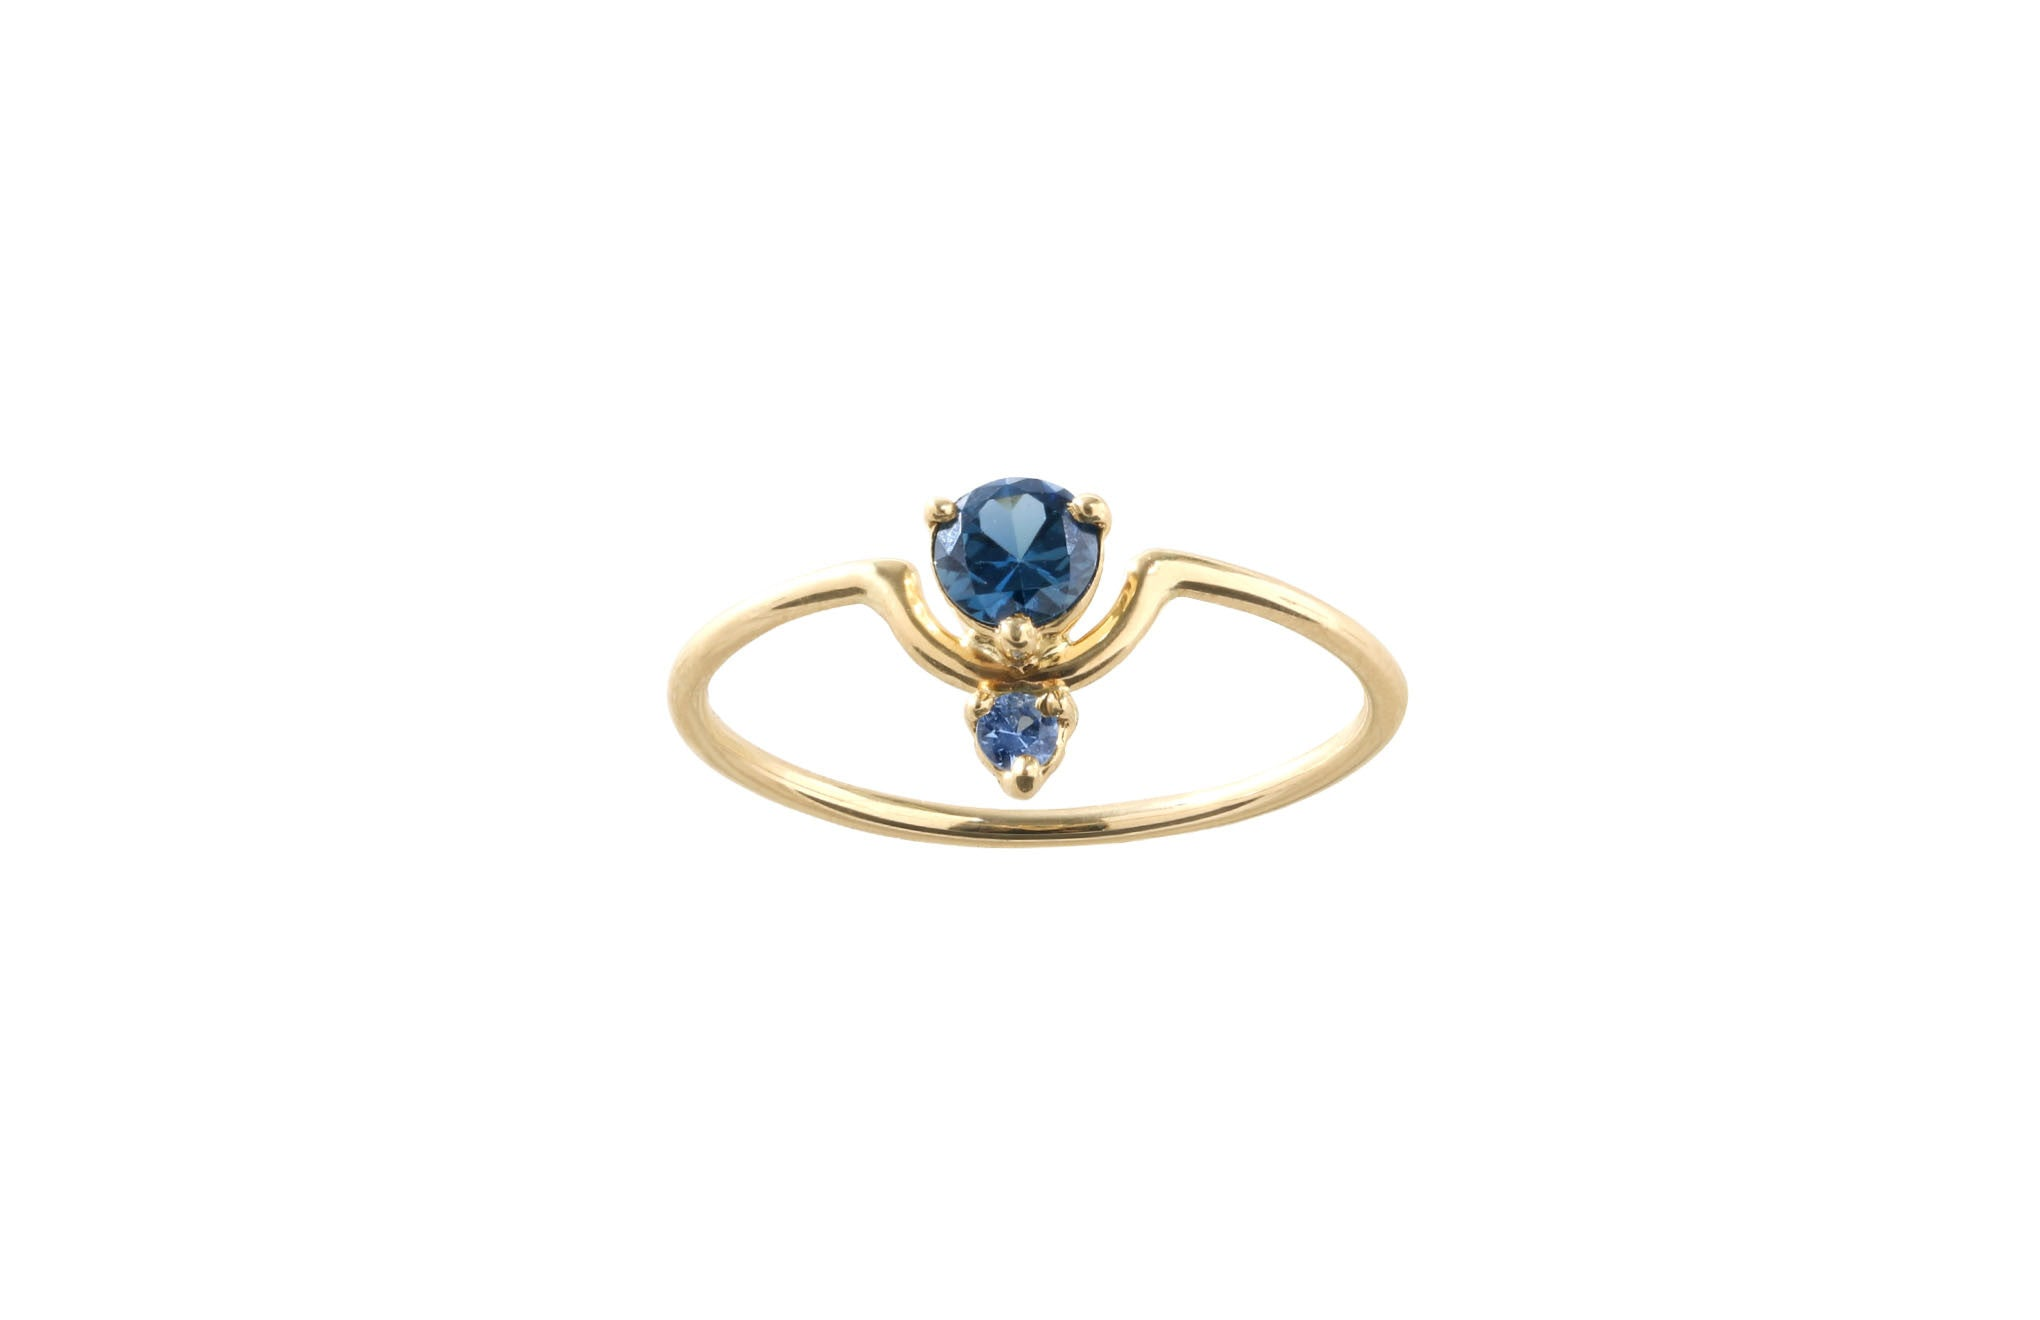 fairtrade ring bellis engagement blue ethical sapphire edition light products gold limited alebrusan gemstone white